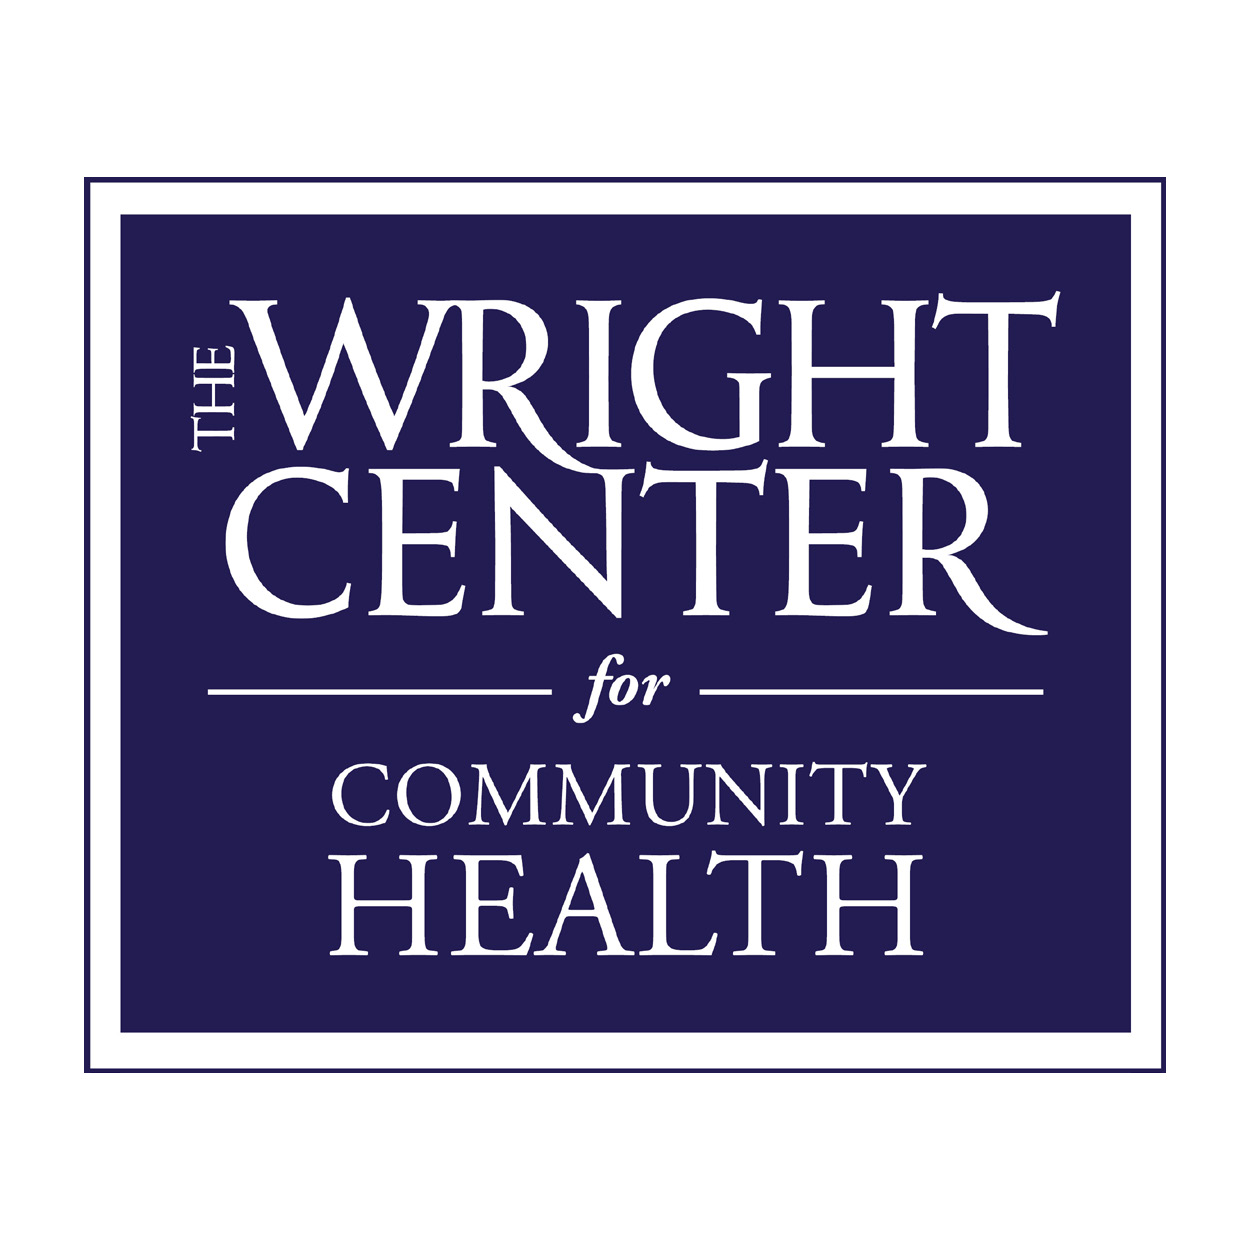 The Wright Center for Community Health